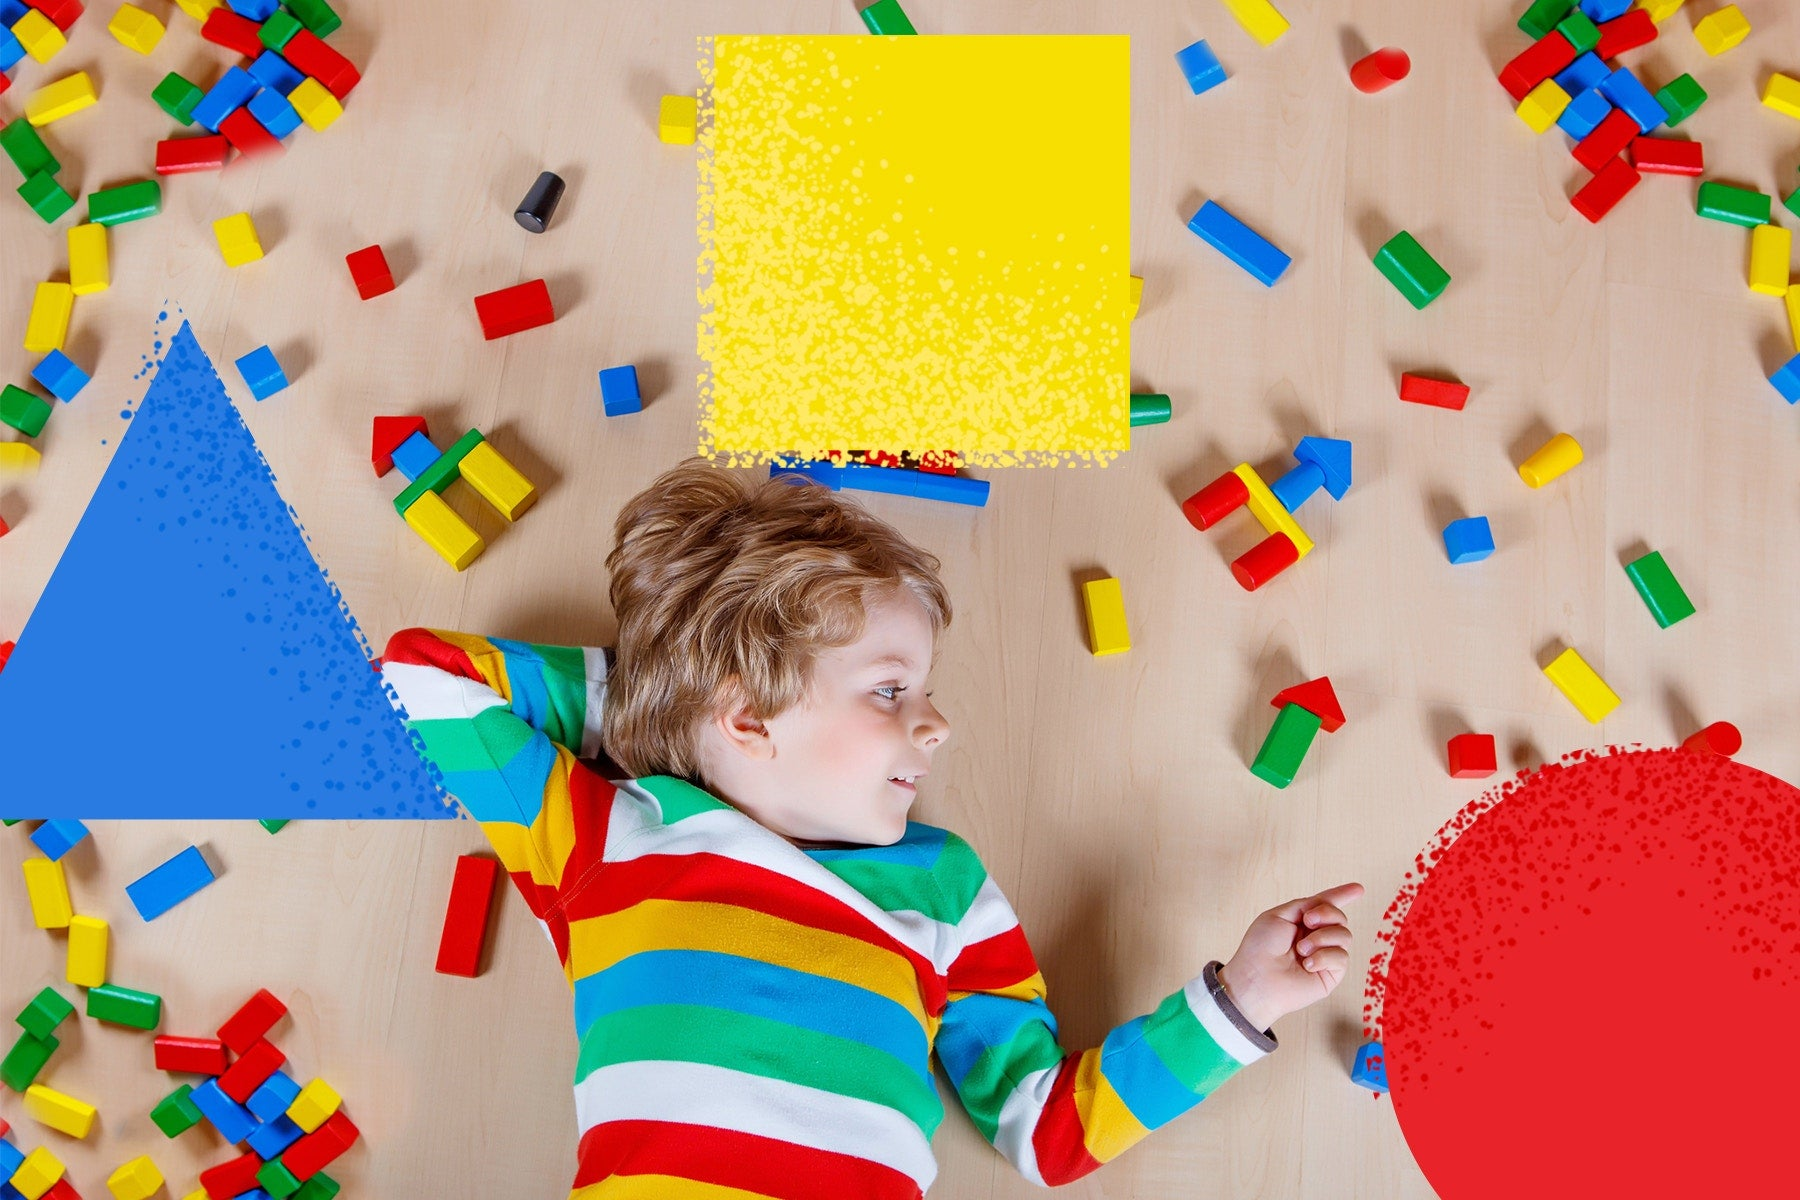 child lying in middle of lego blocks